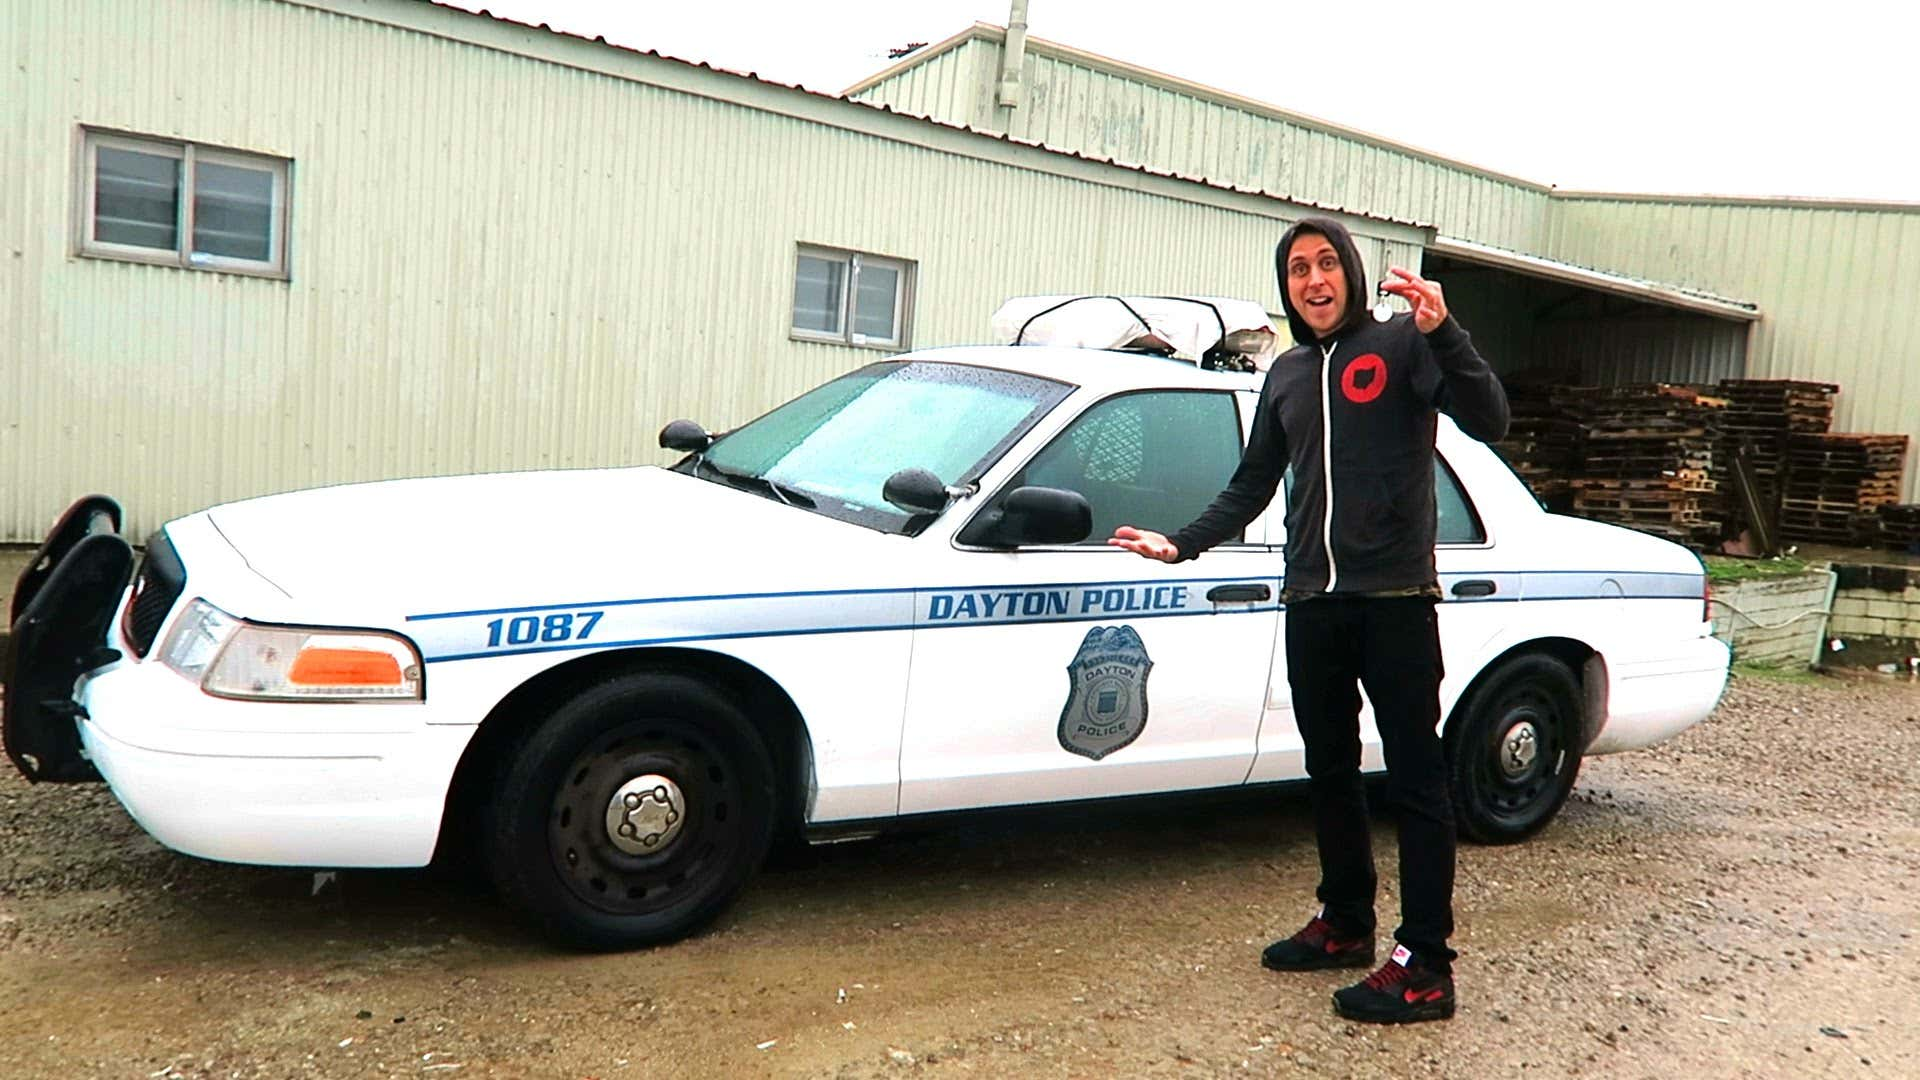 Stealing Your Dad's Cop Car To Pull Over Your Ex-Girlfriend And Her